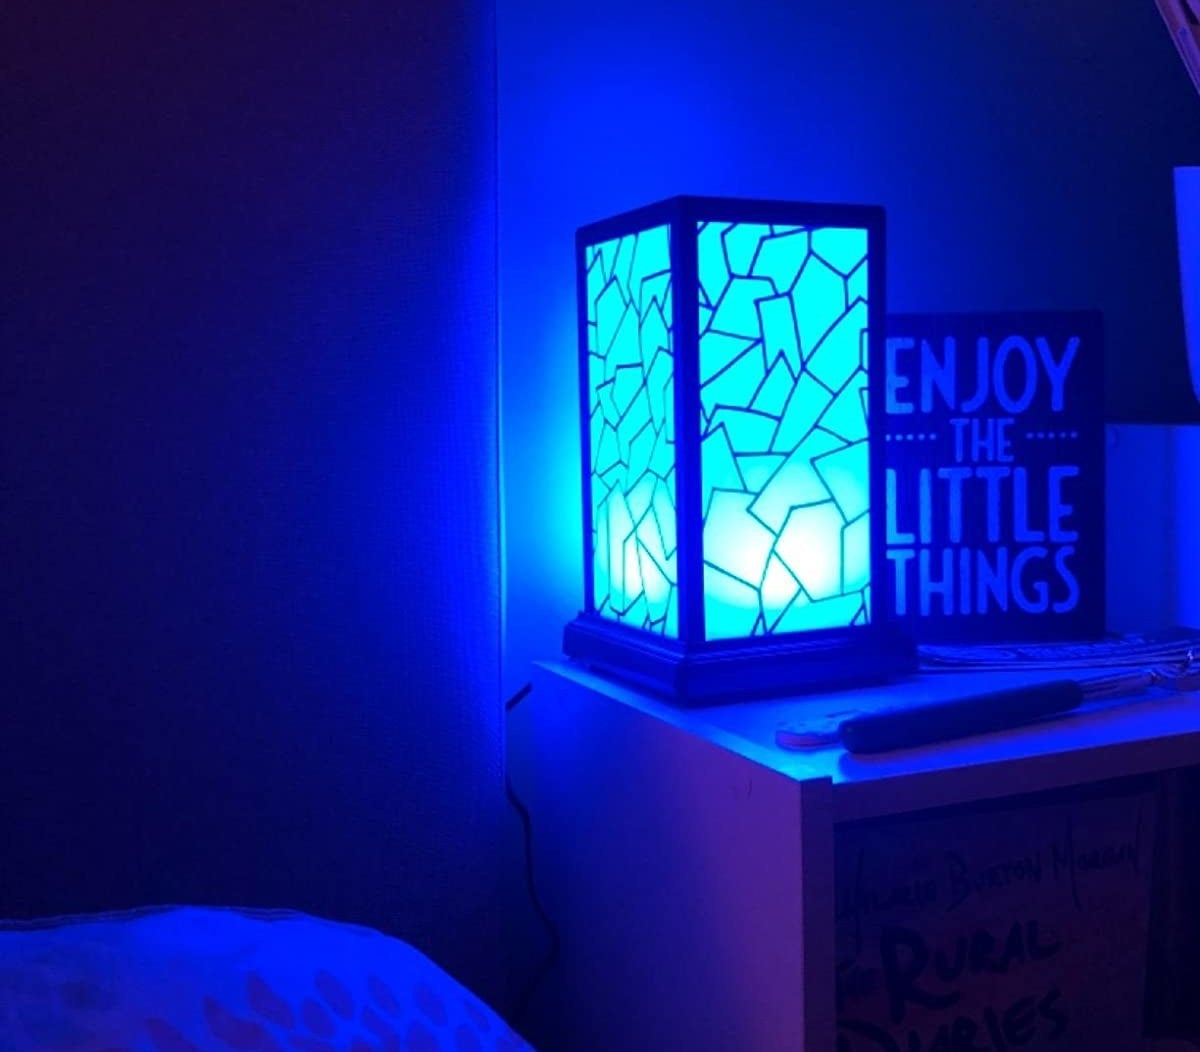 Reviewer image of one lamp illuminated with a blue light